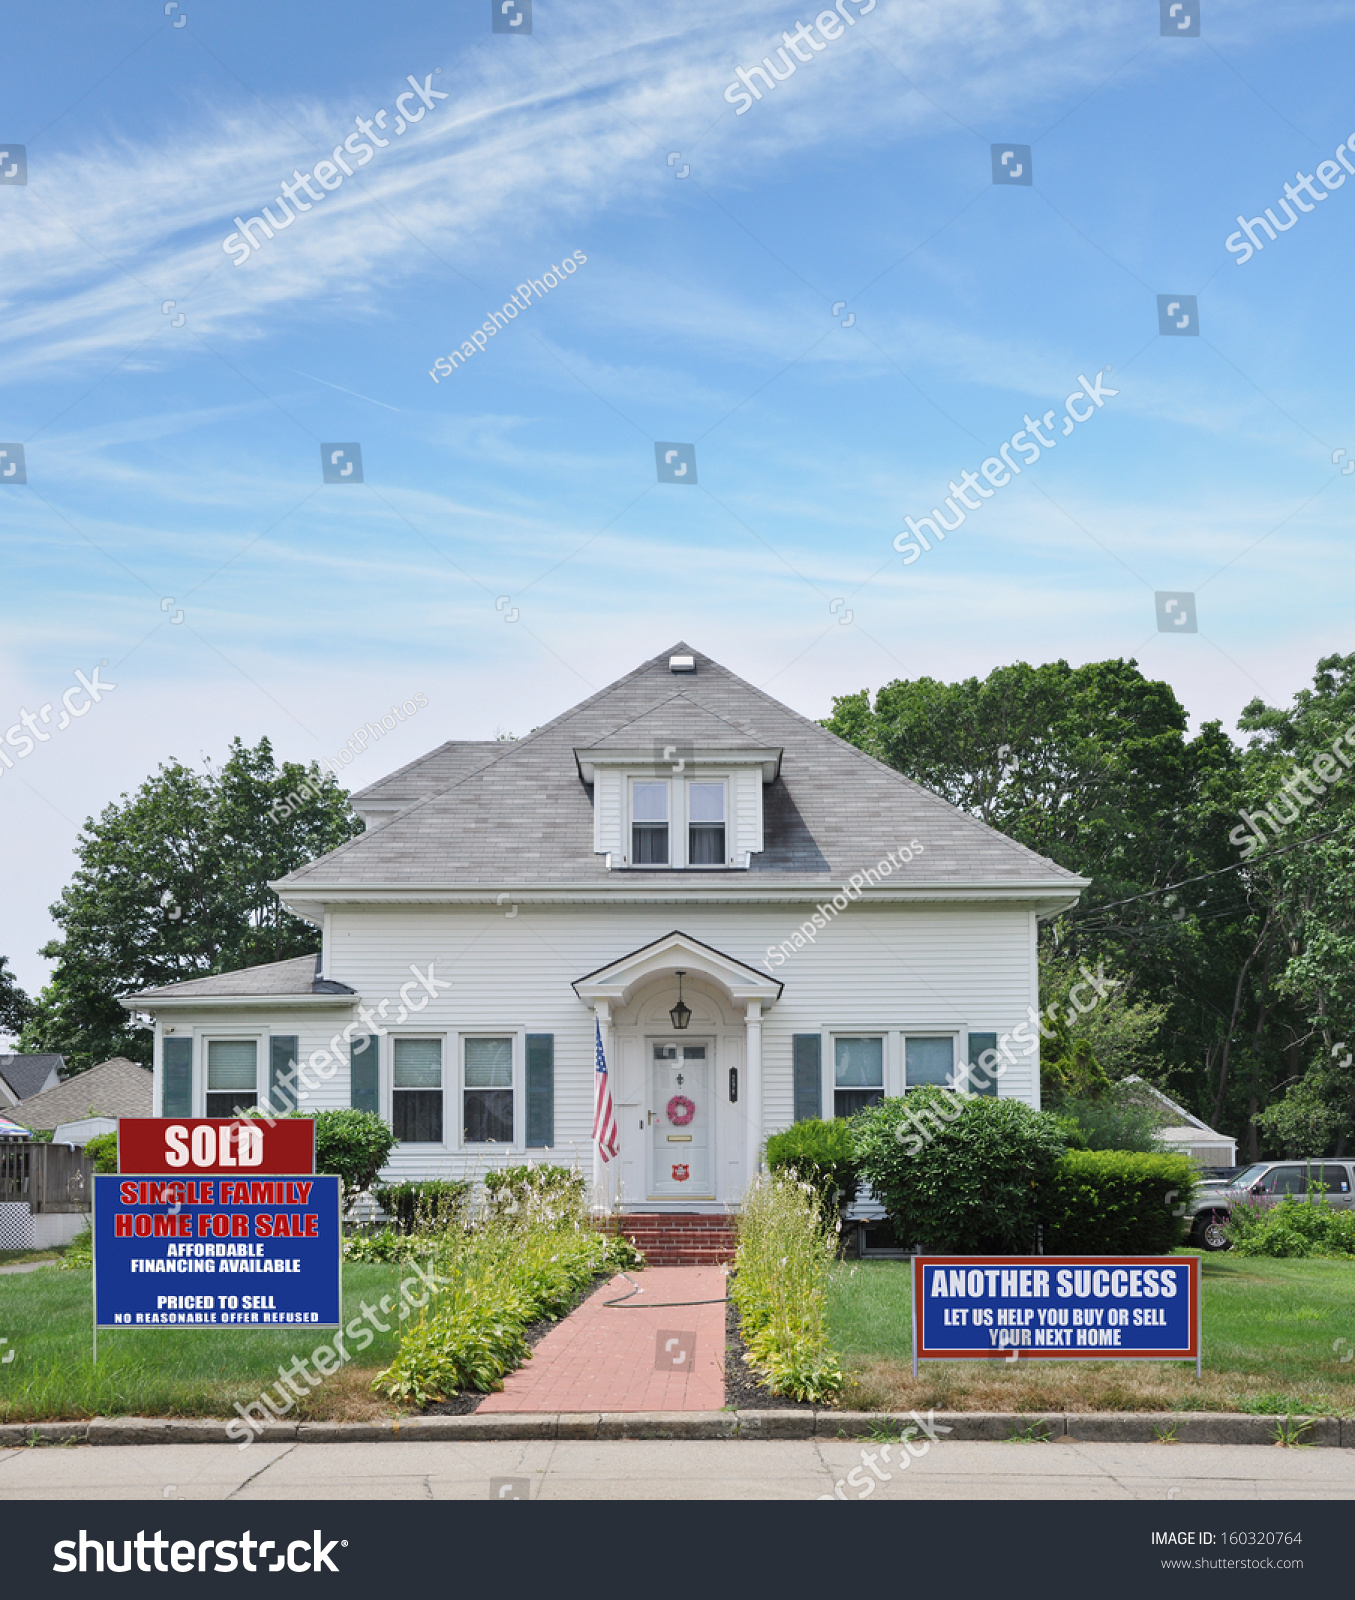 Sold another success real estate for sale sign front yard for Cottages and bungalows for sale